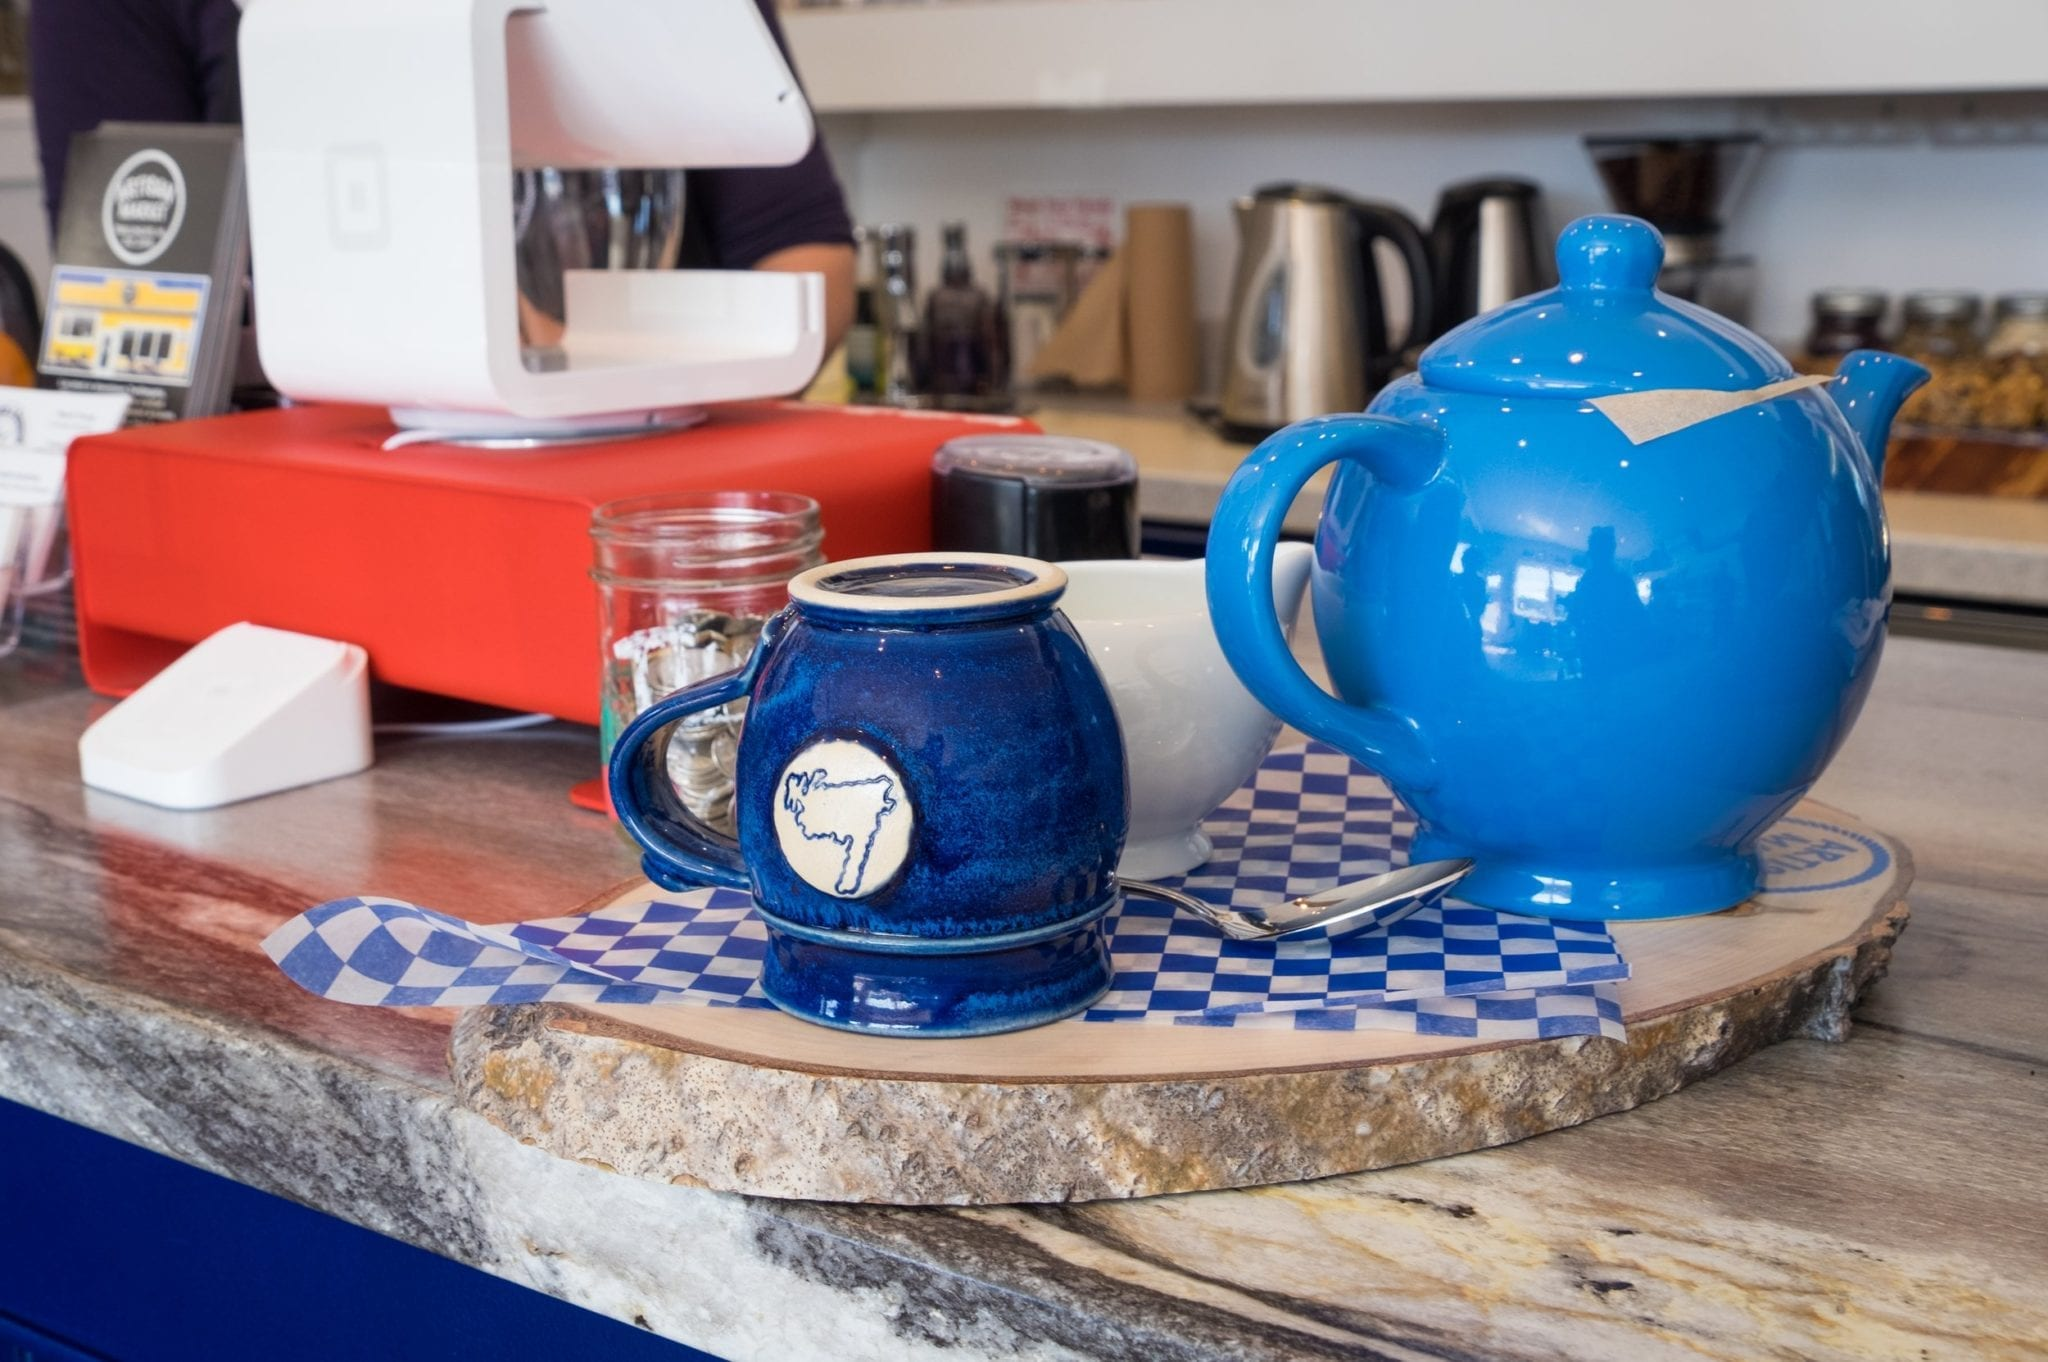 A bright blue teapot and dark blue teacup with the outline of Newfoundland on it, served on a slab of wood.